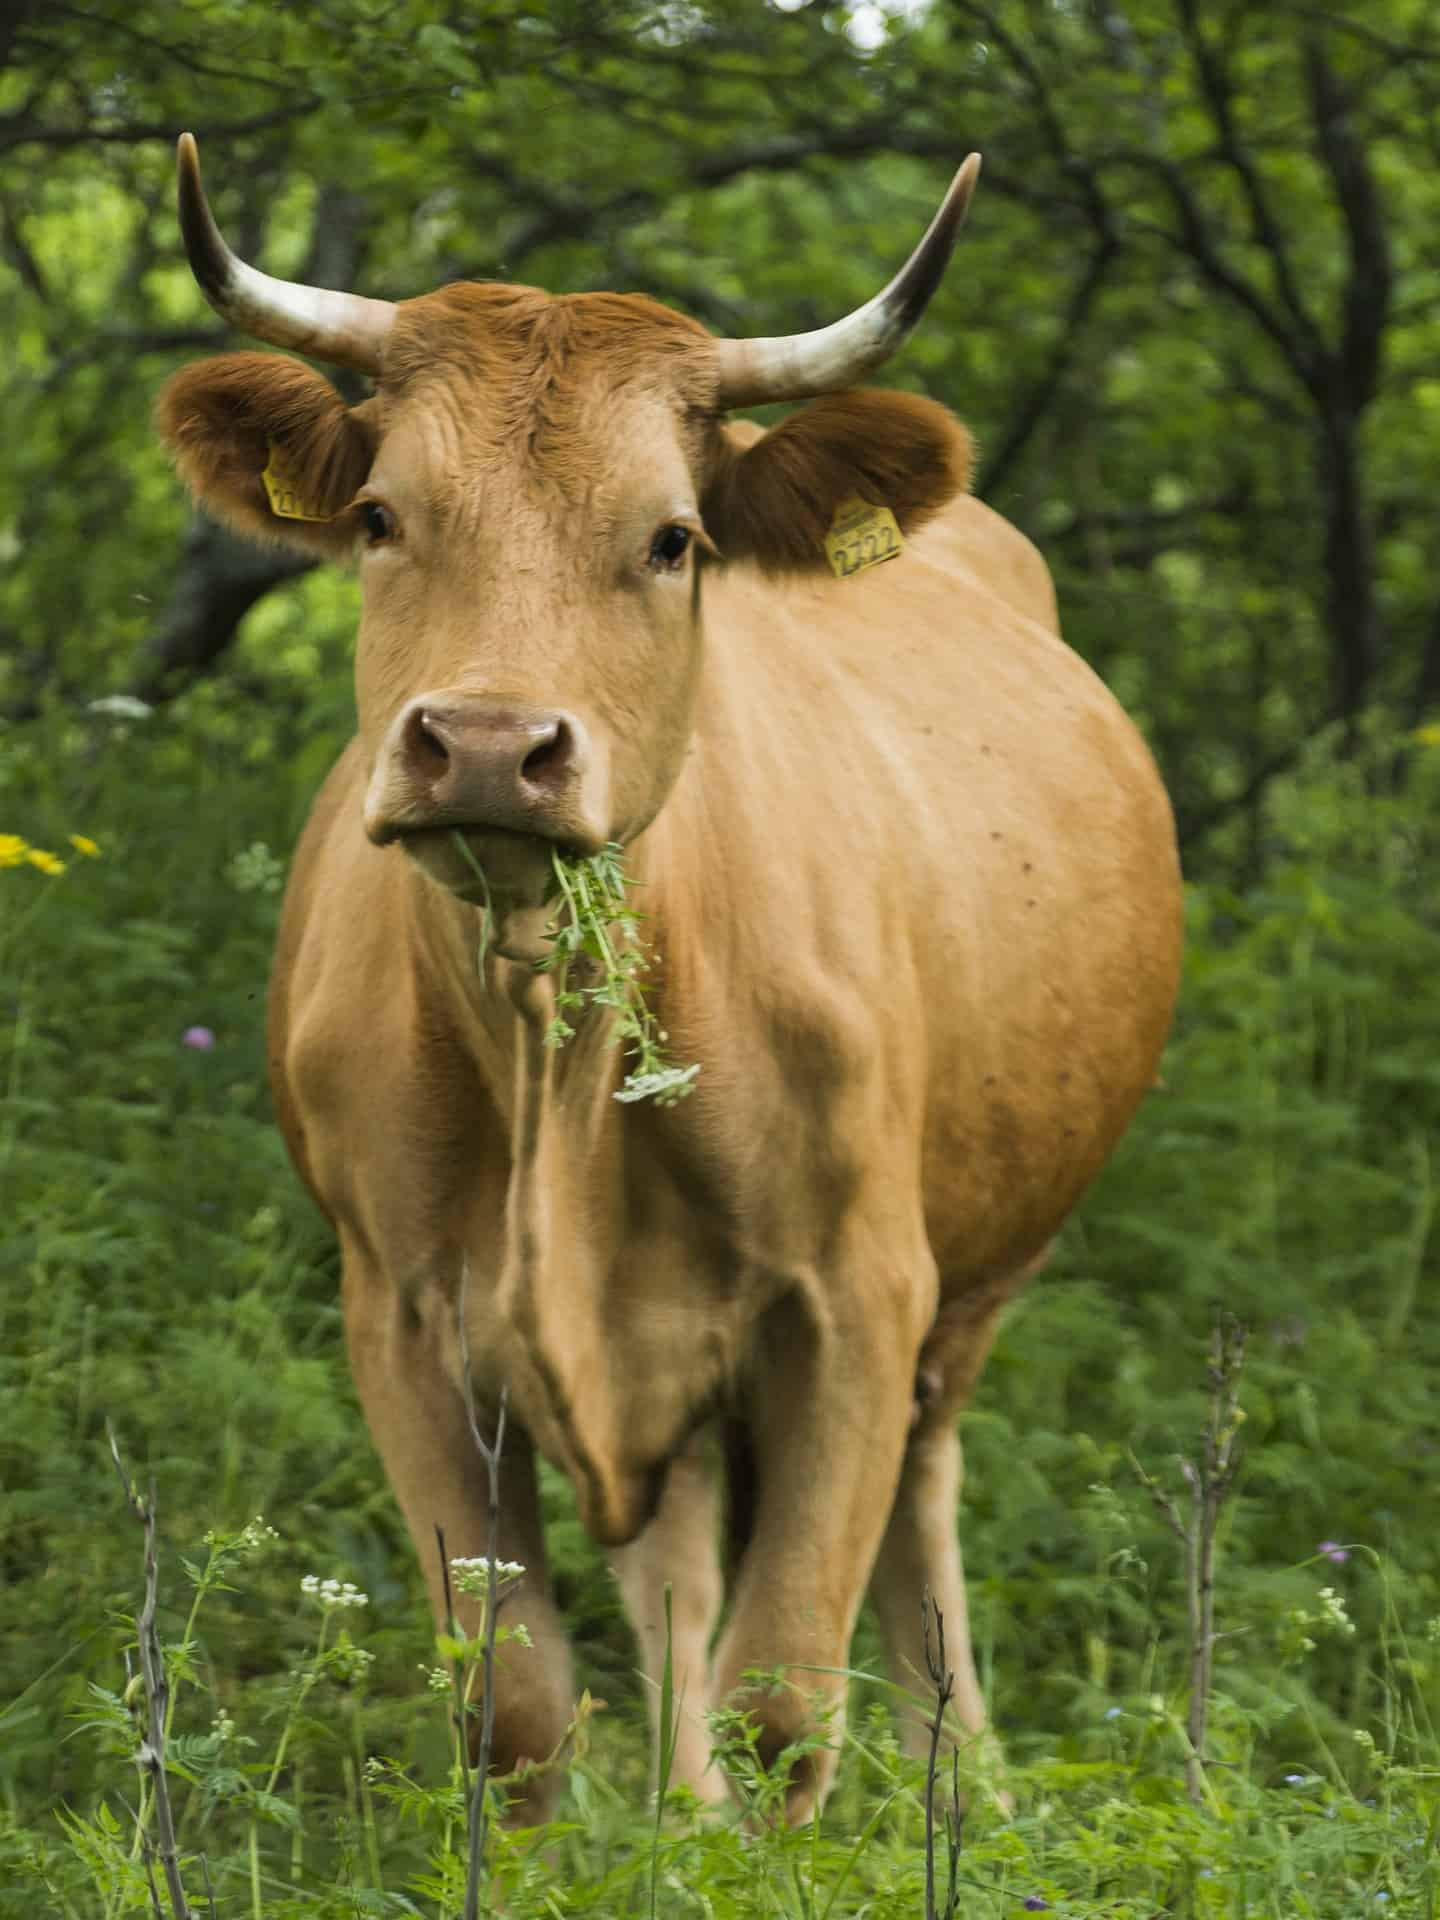 brown cow eating grass in a pasture